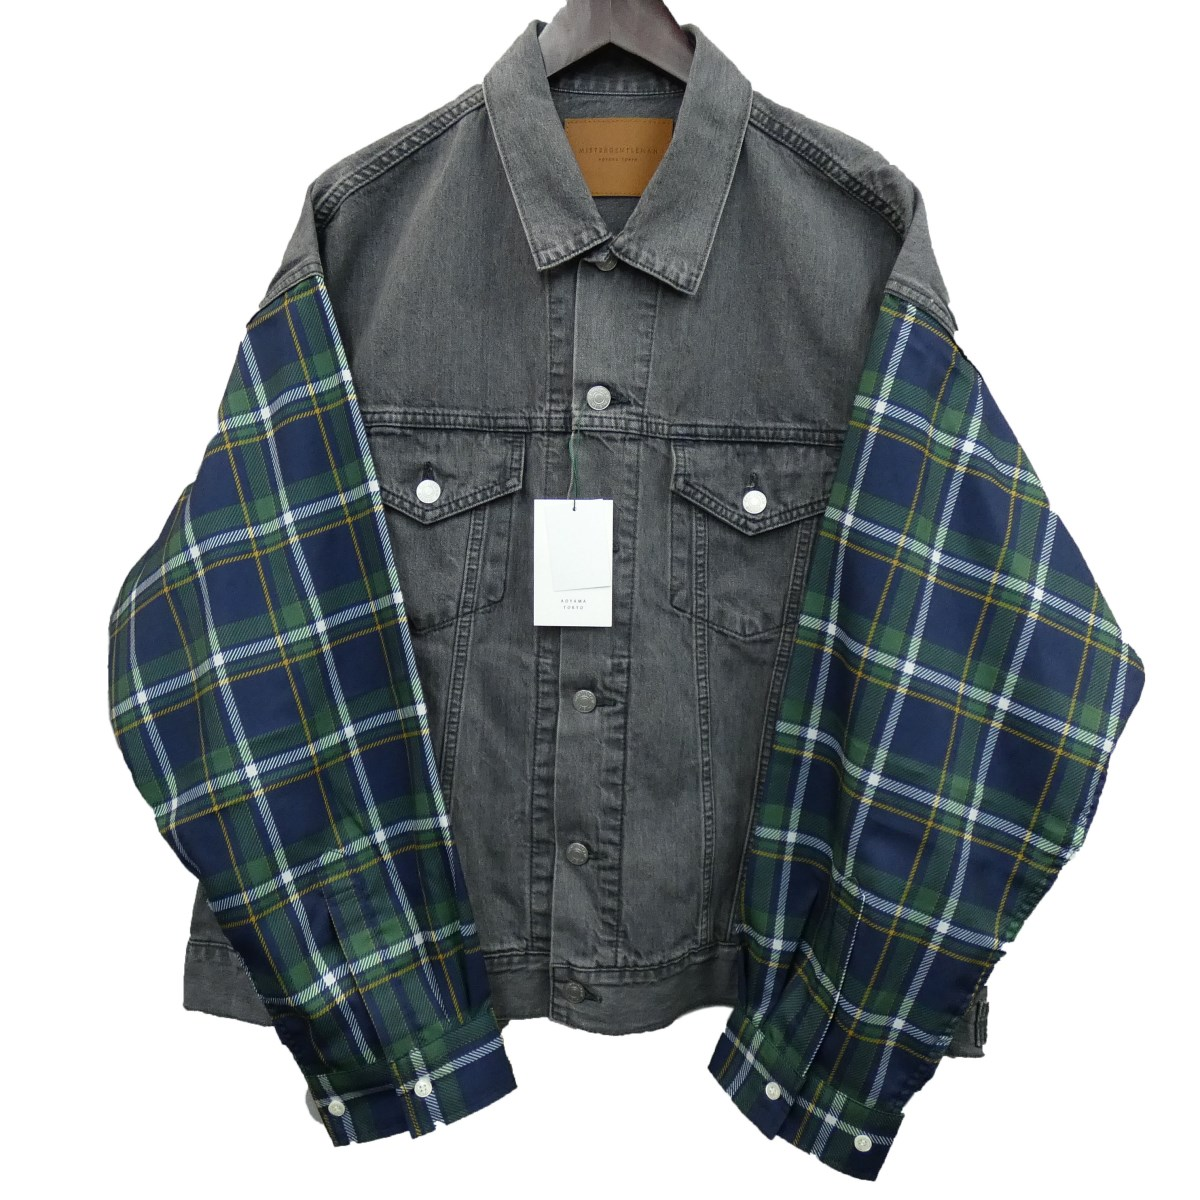 【中古】MR.GENTLEMAN 20SS 「MADRAS CHECK SLIT SHOULDER DENIM JACKET」 ブラック サイズ:L 【210320】(ミスタージェントルマン)